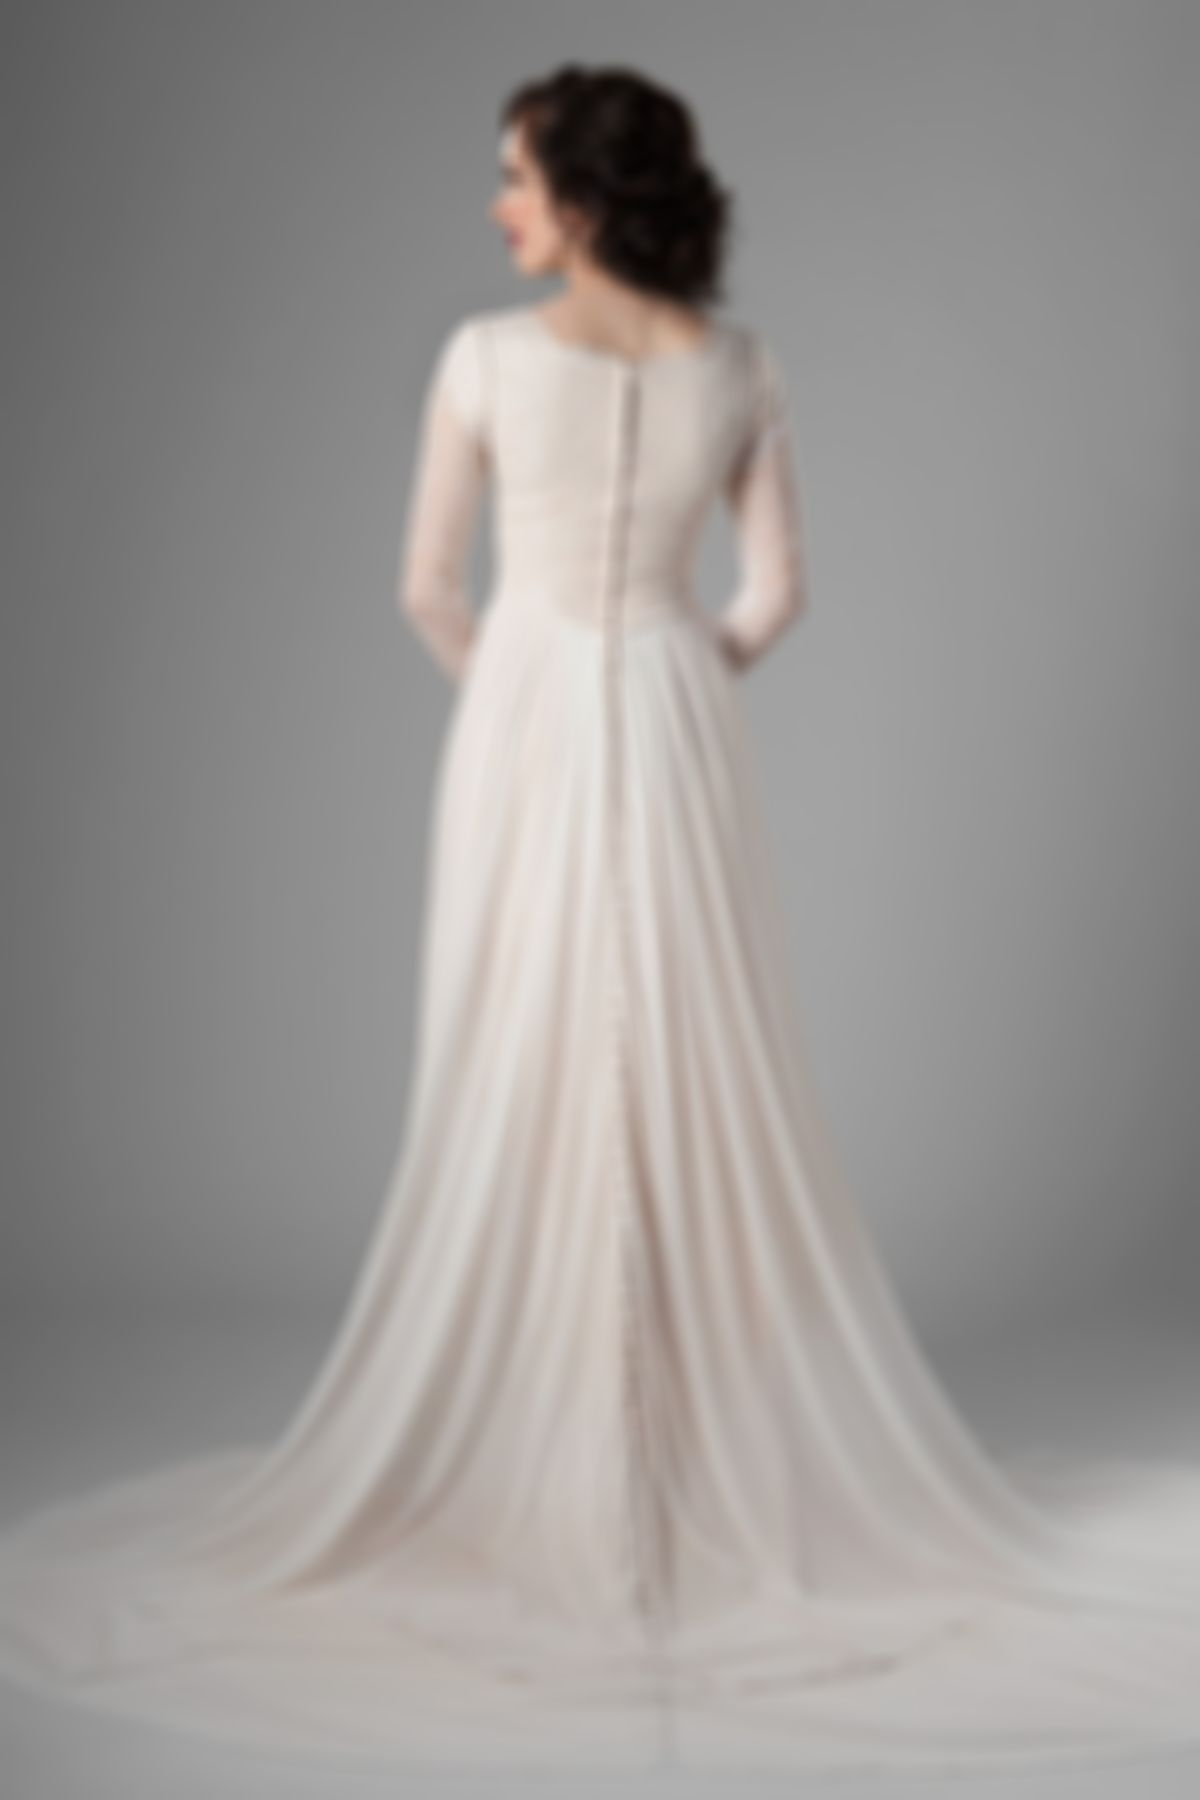 2020 New Wedding Dress Fashion Dress mother of the bride dresses with jackets knee length cream formal gown